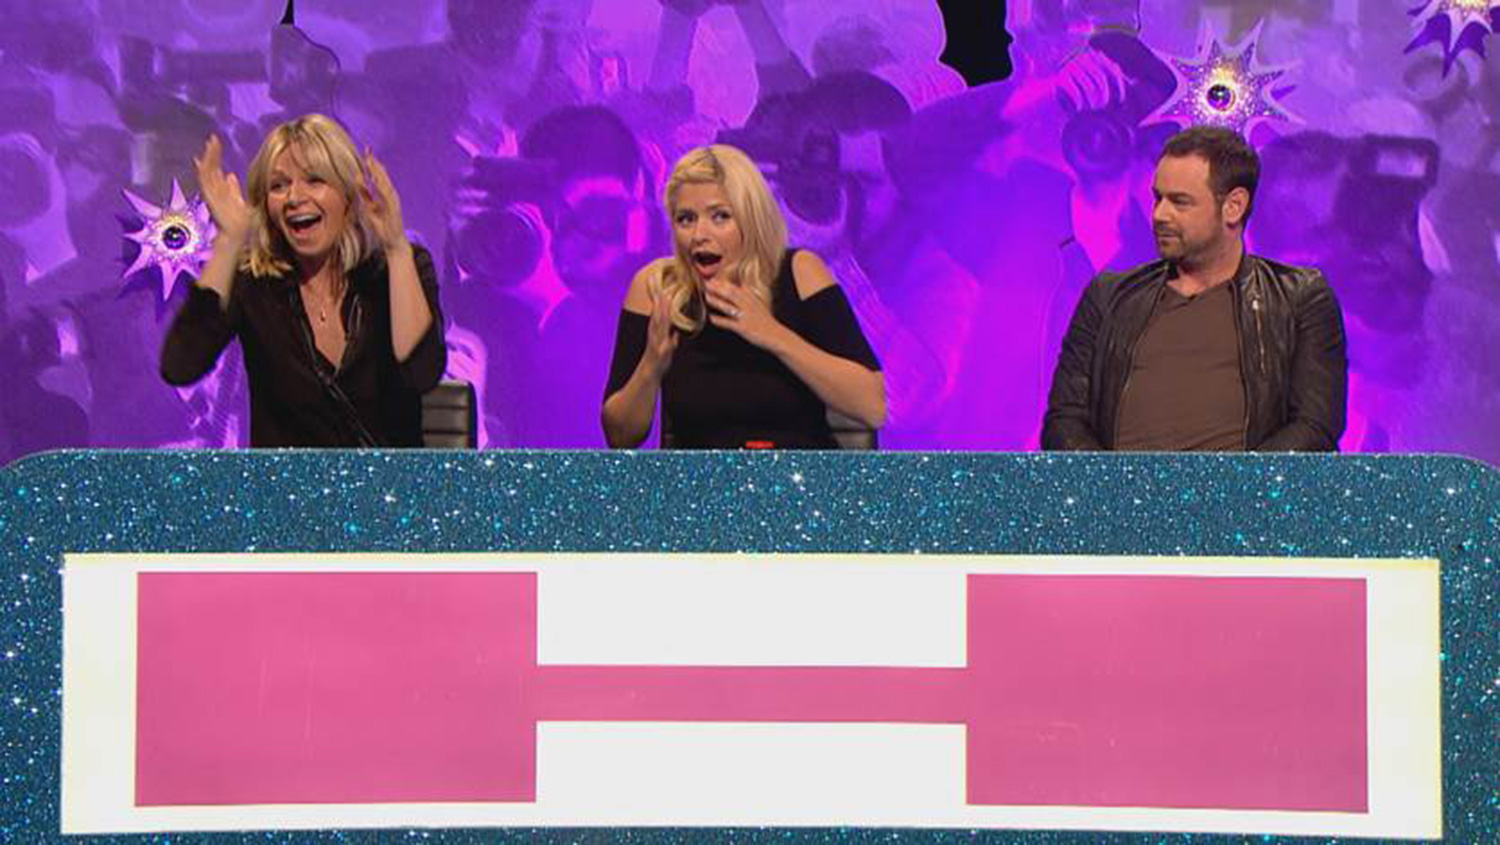 Danny Dyer Just Made A Ballsy Move In Front Of Holly Willoughby On TV danny dyer